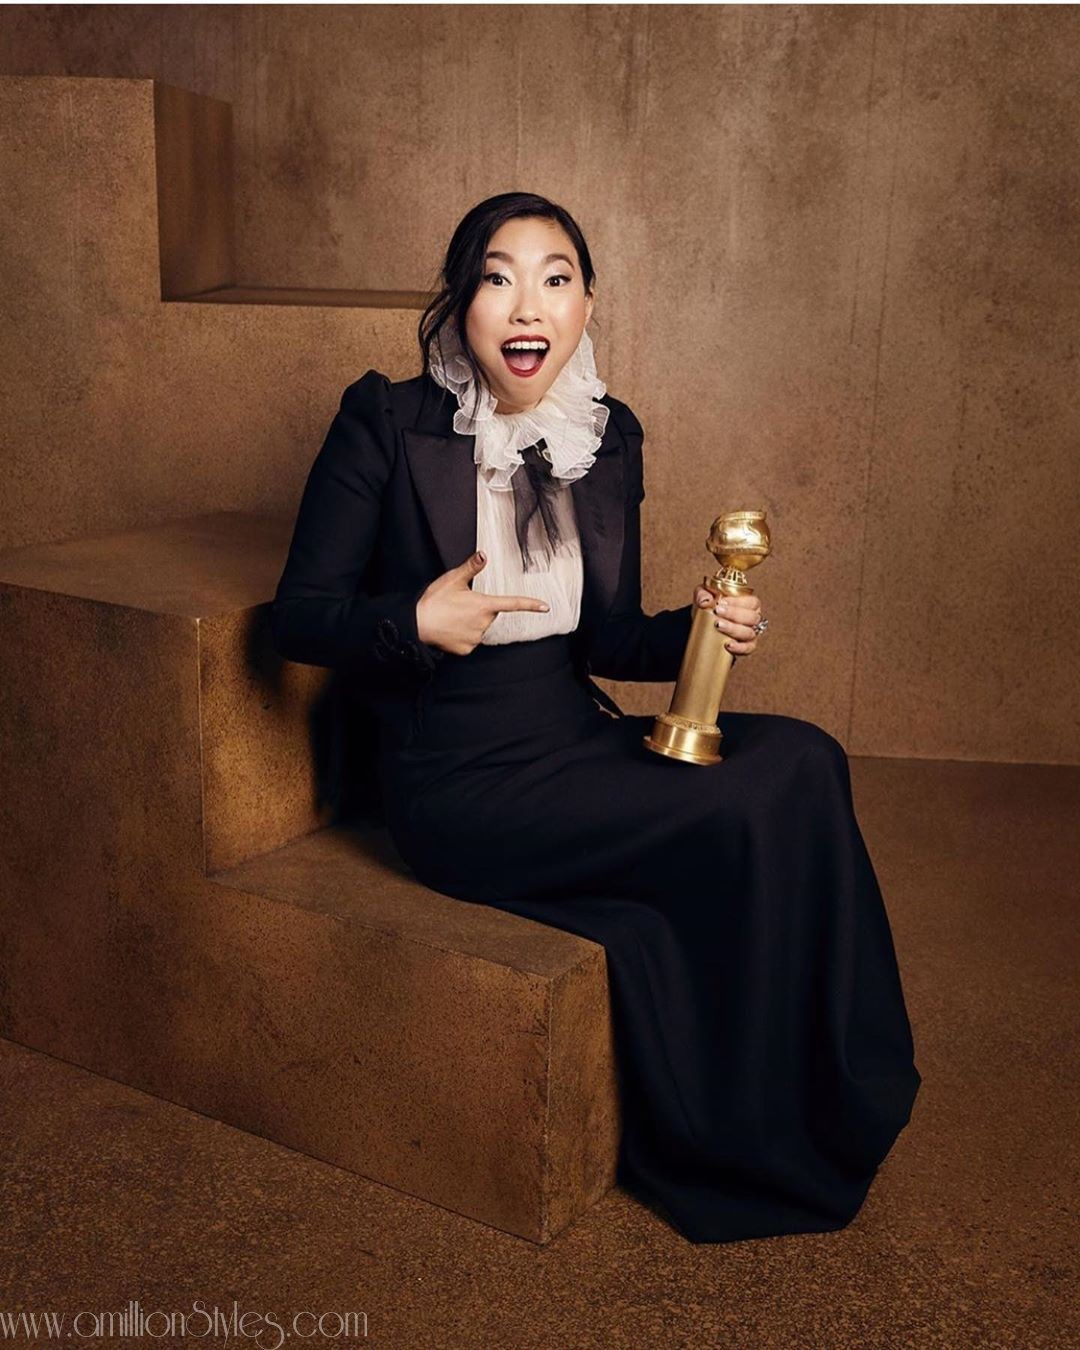 Quick Look At Some Winners At The 2020 Golden Globes